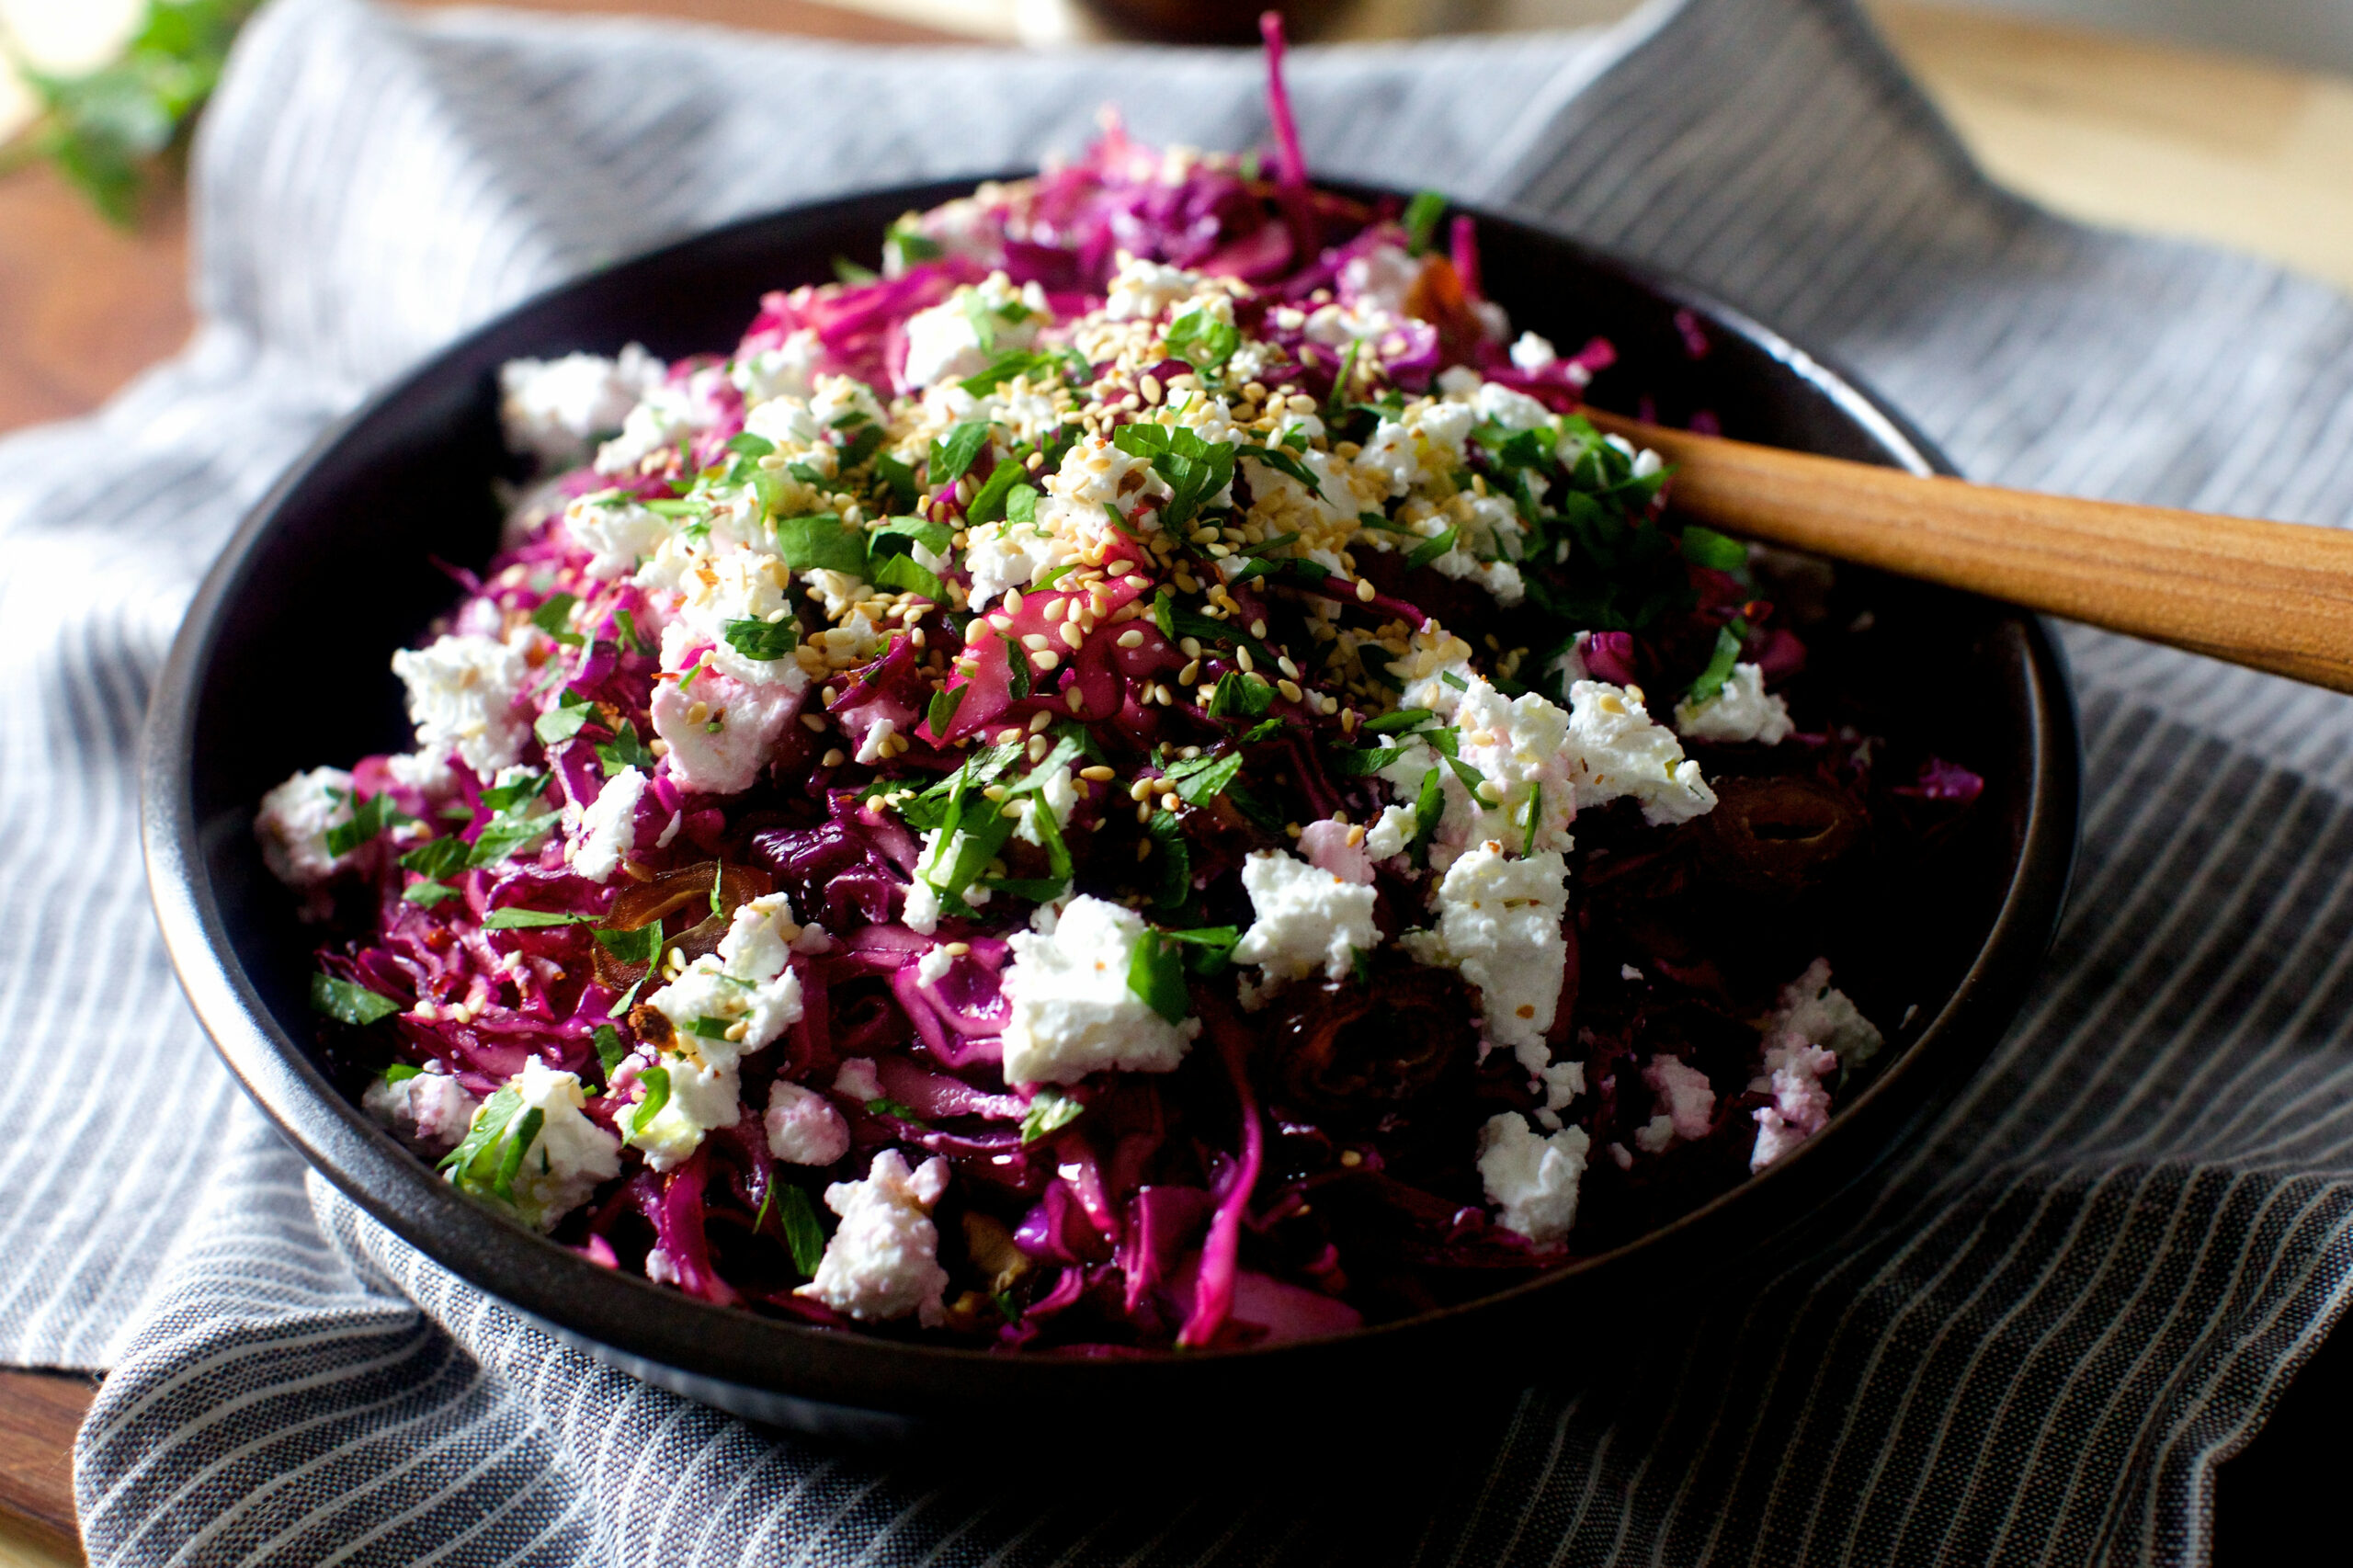 Date, Feta And Red Cabbage Salad | KeepRecipes: Your ..